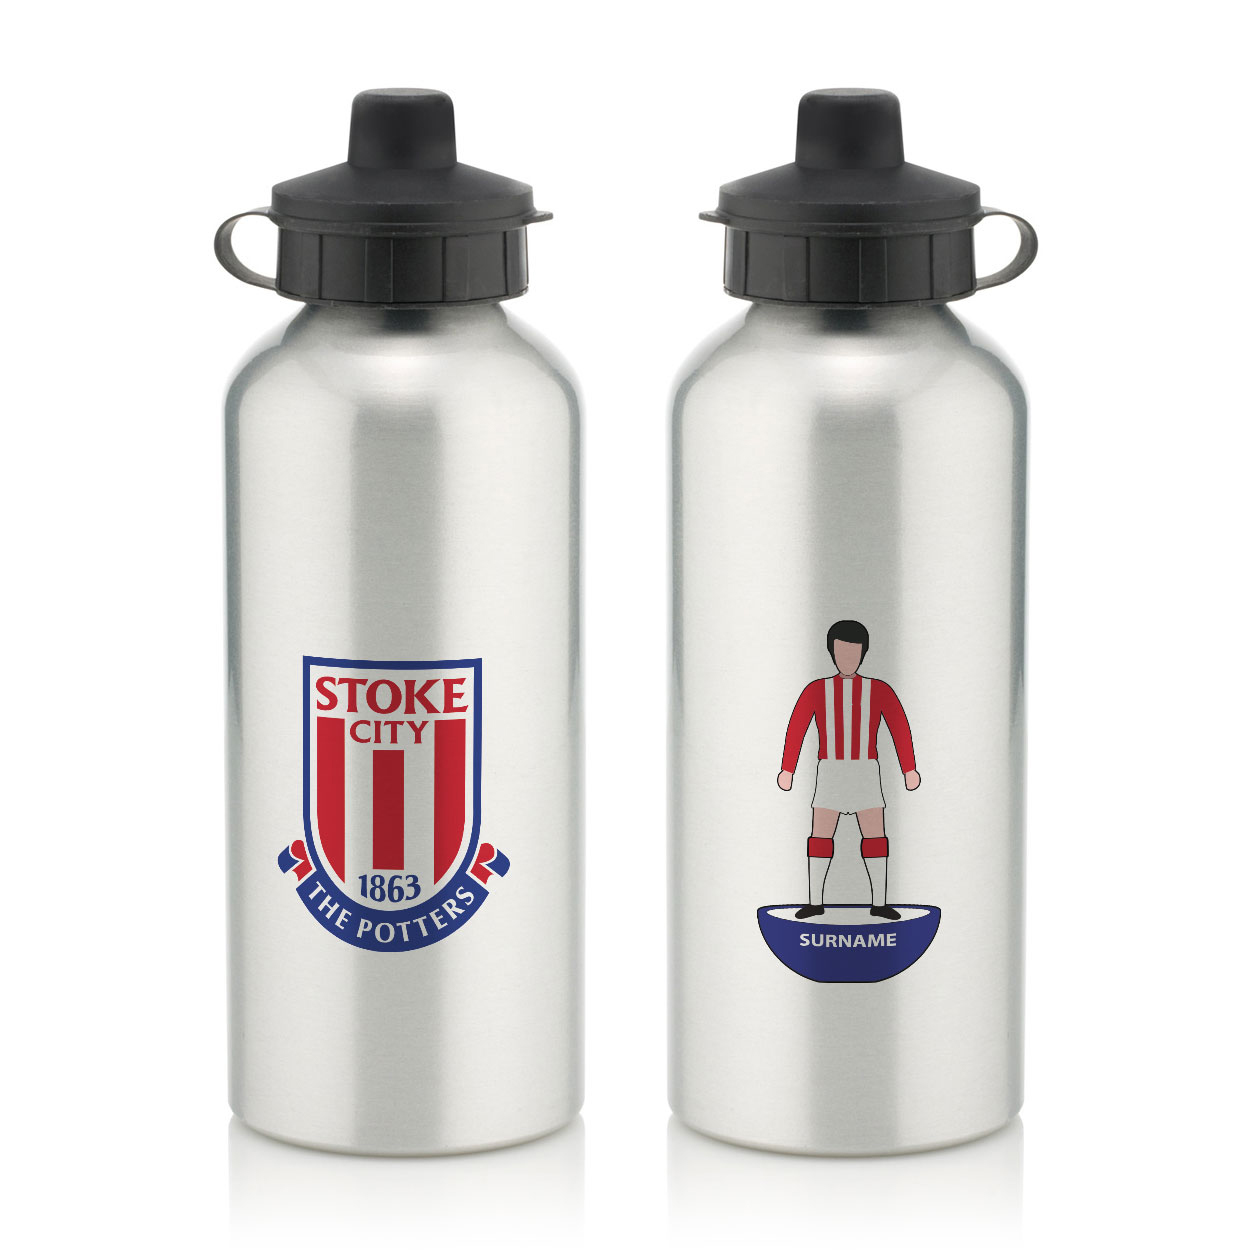 Stoke City FC Player Figure Water Bottle